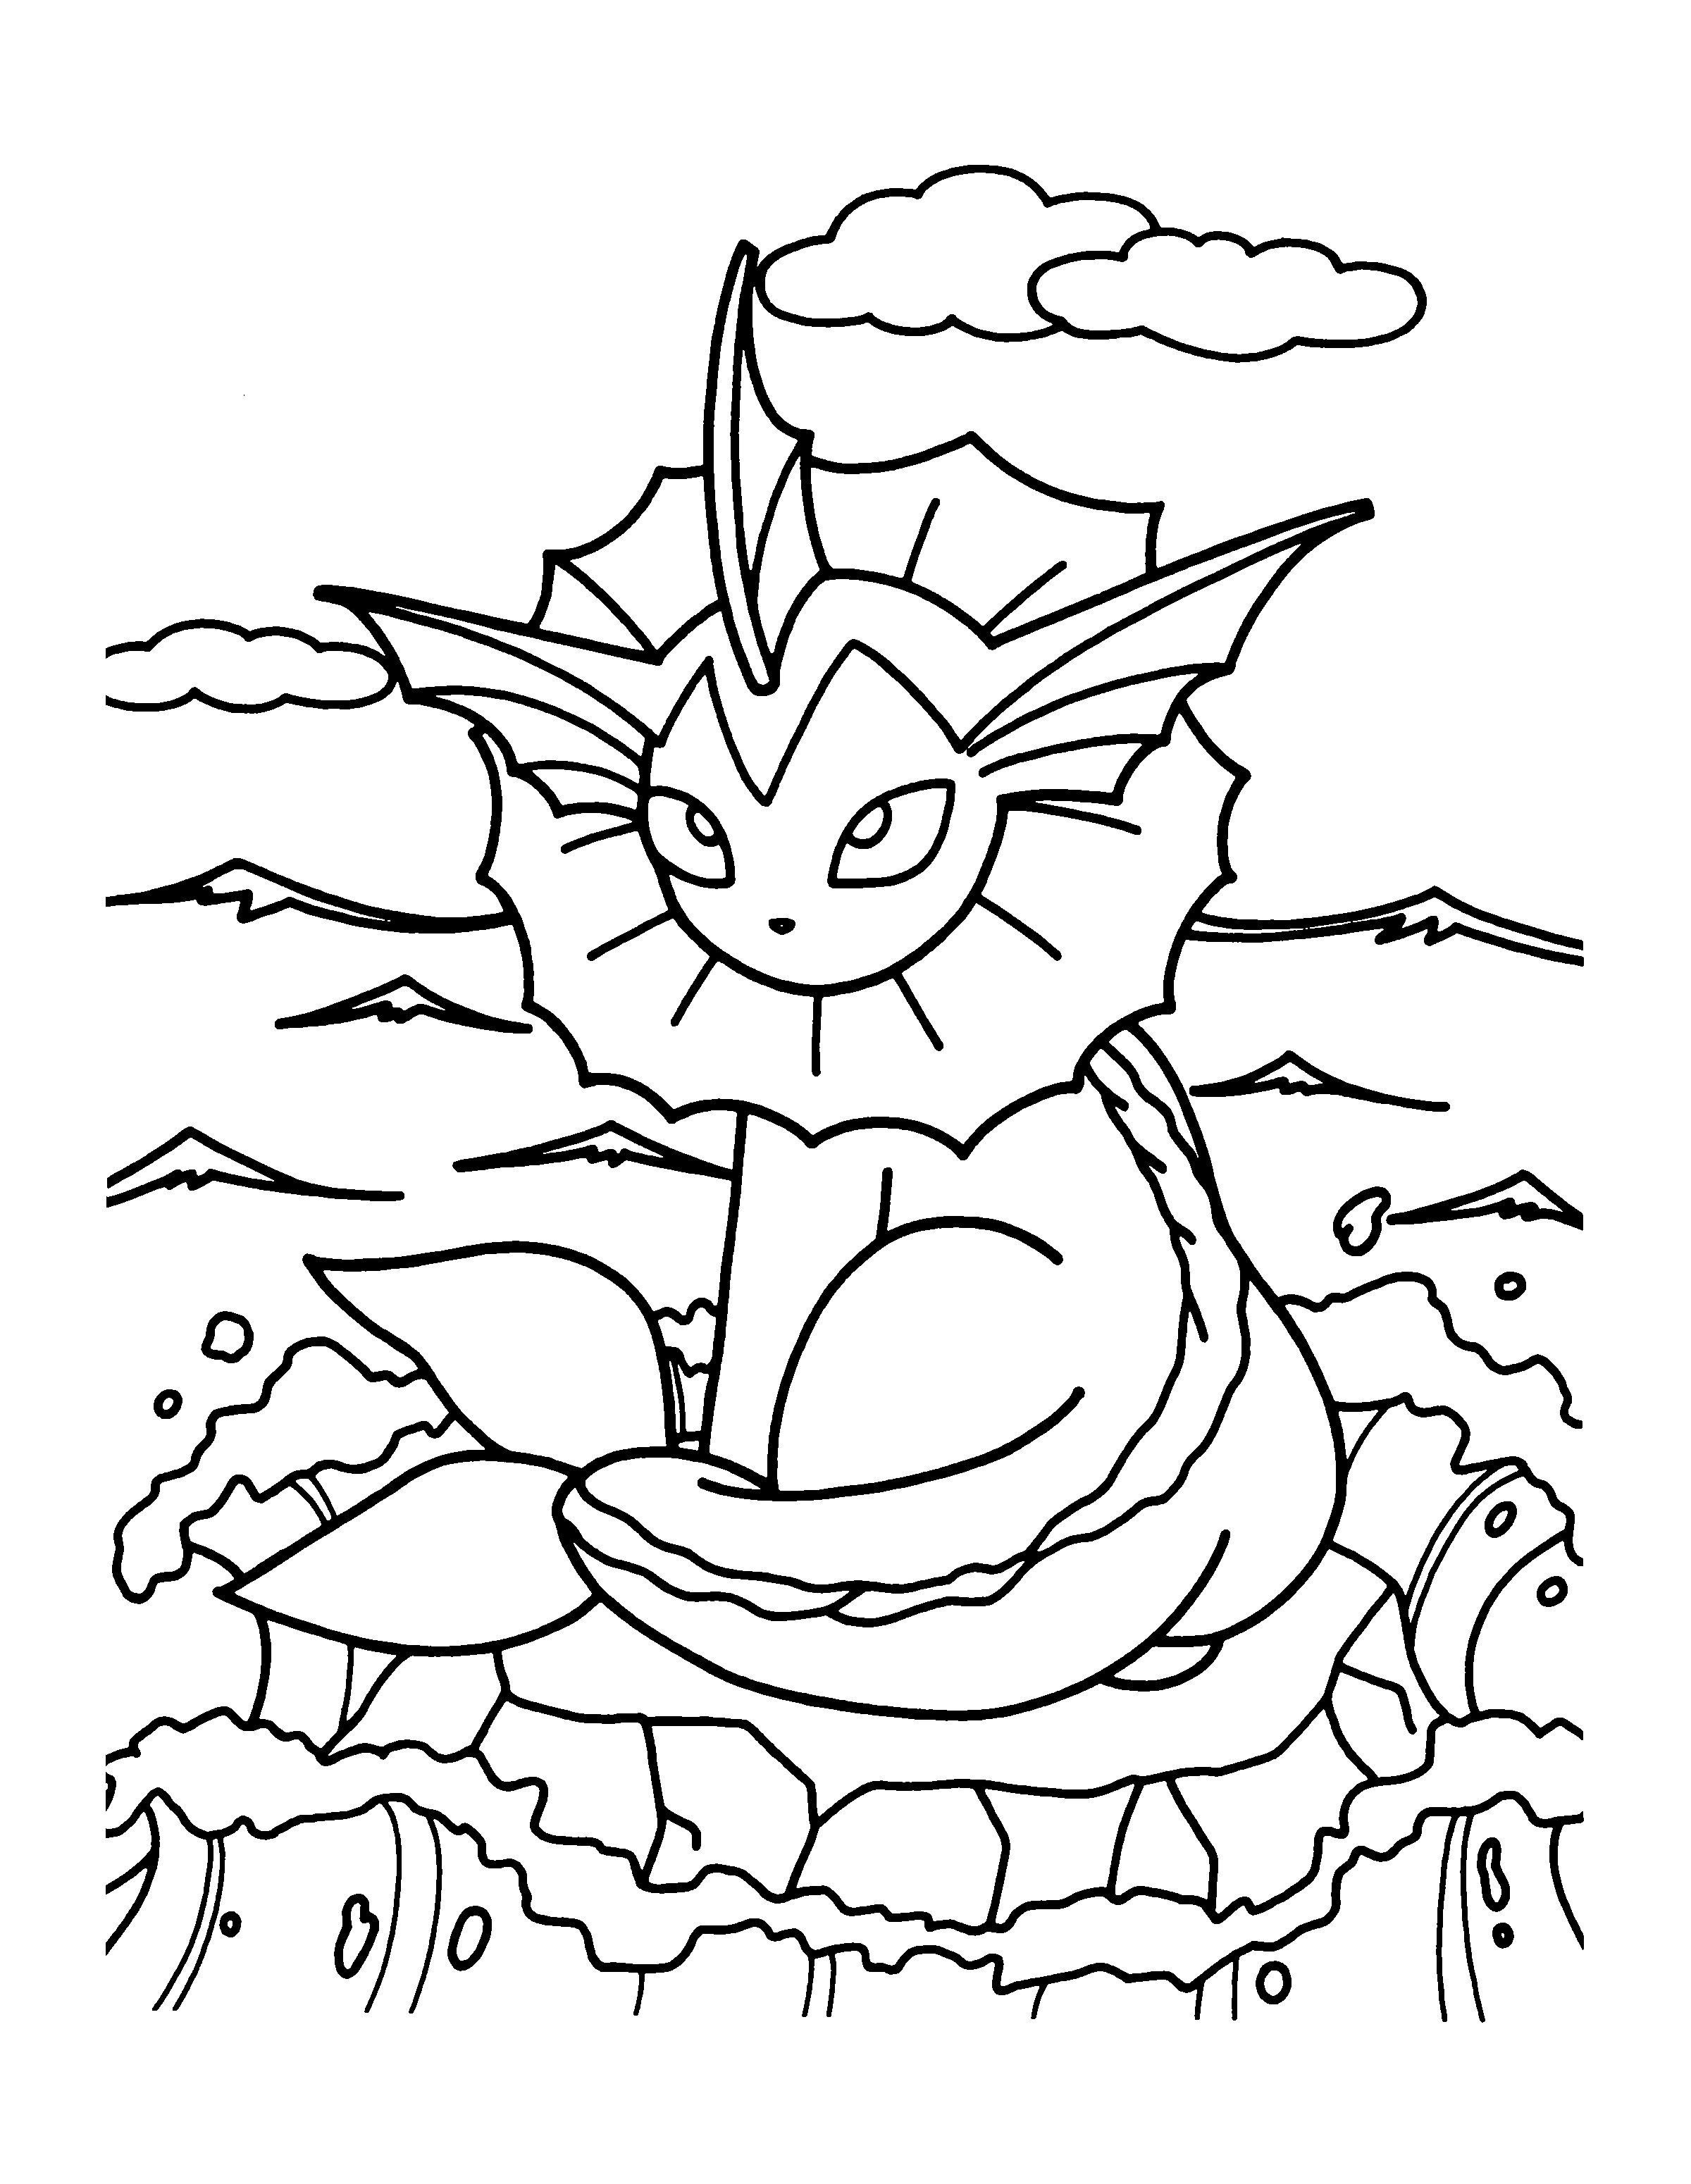 Legendary Pokemon Coloring Pages Elegant Greninja Coloring Page In 2020 Superhero Coloring Pages Bear Coloring Pages Pokemon Coloring Pages